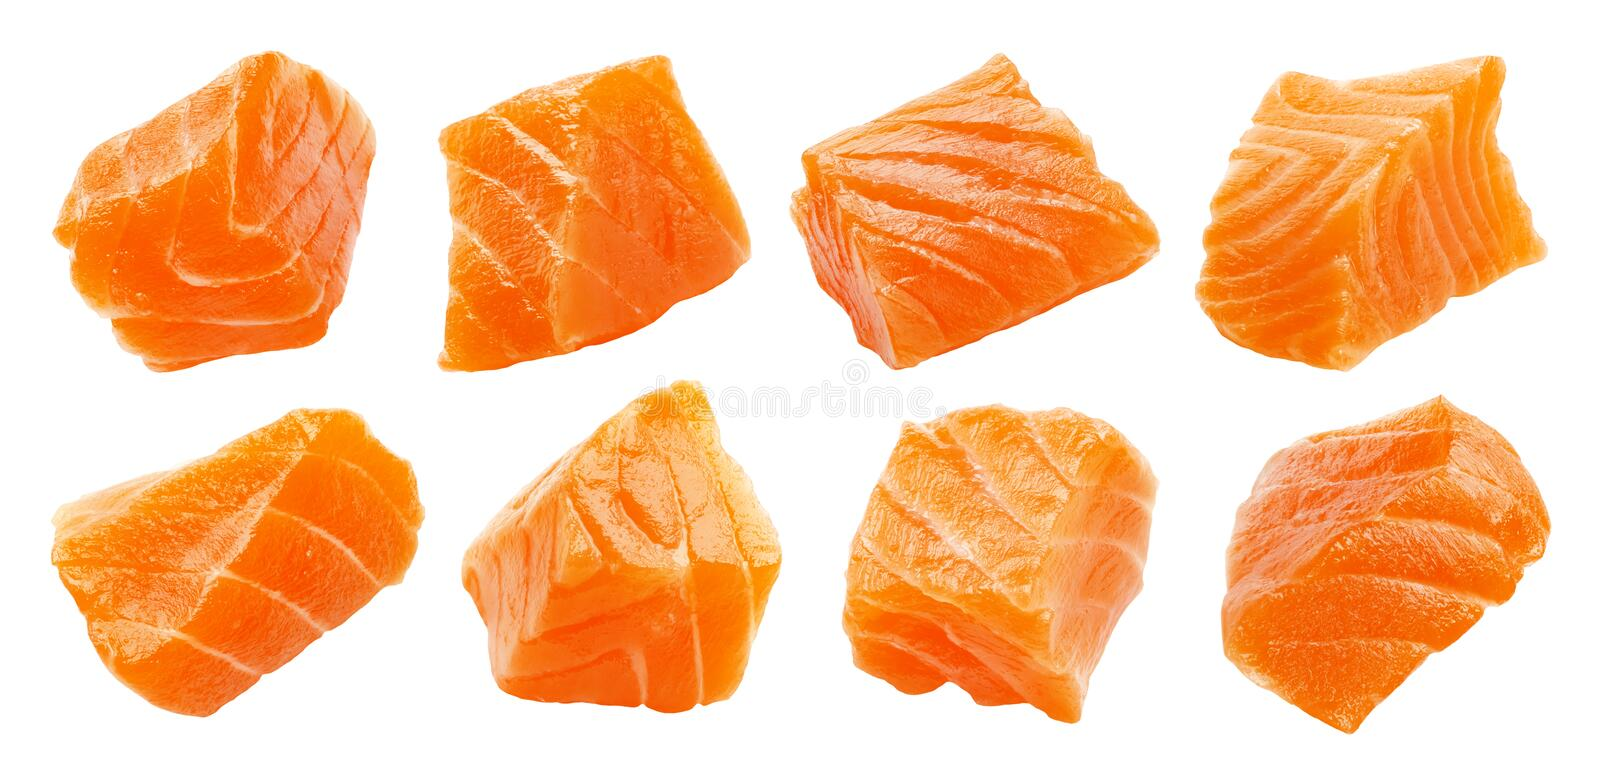 Salmon slices isolated on white background with clipping path, cubes of red fish, ingredient for sushi or salad stock photo